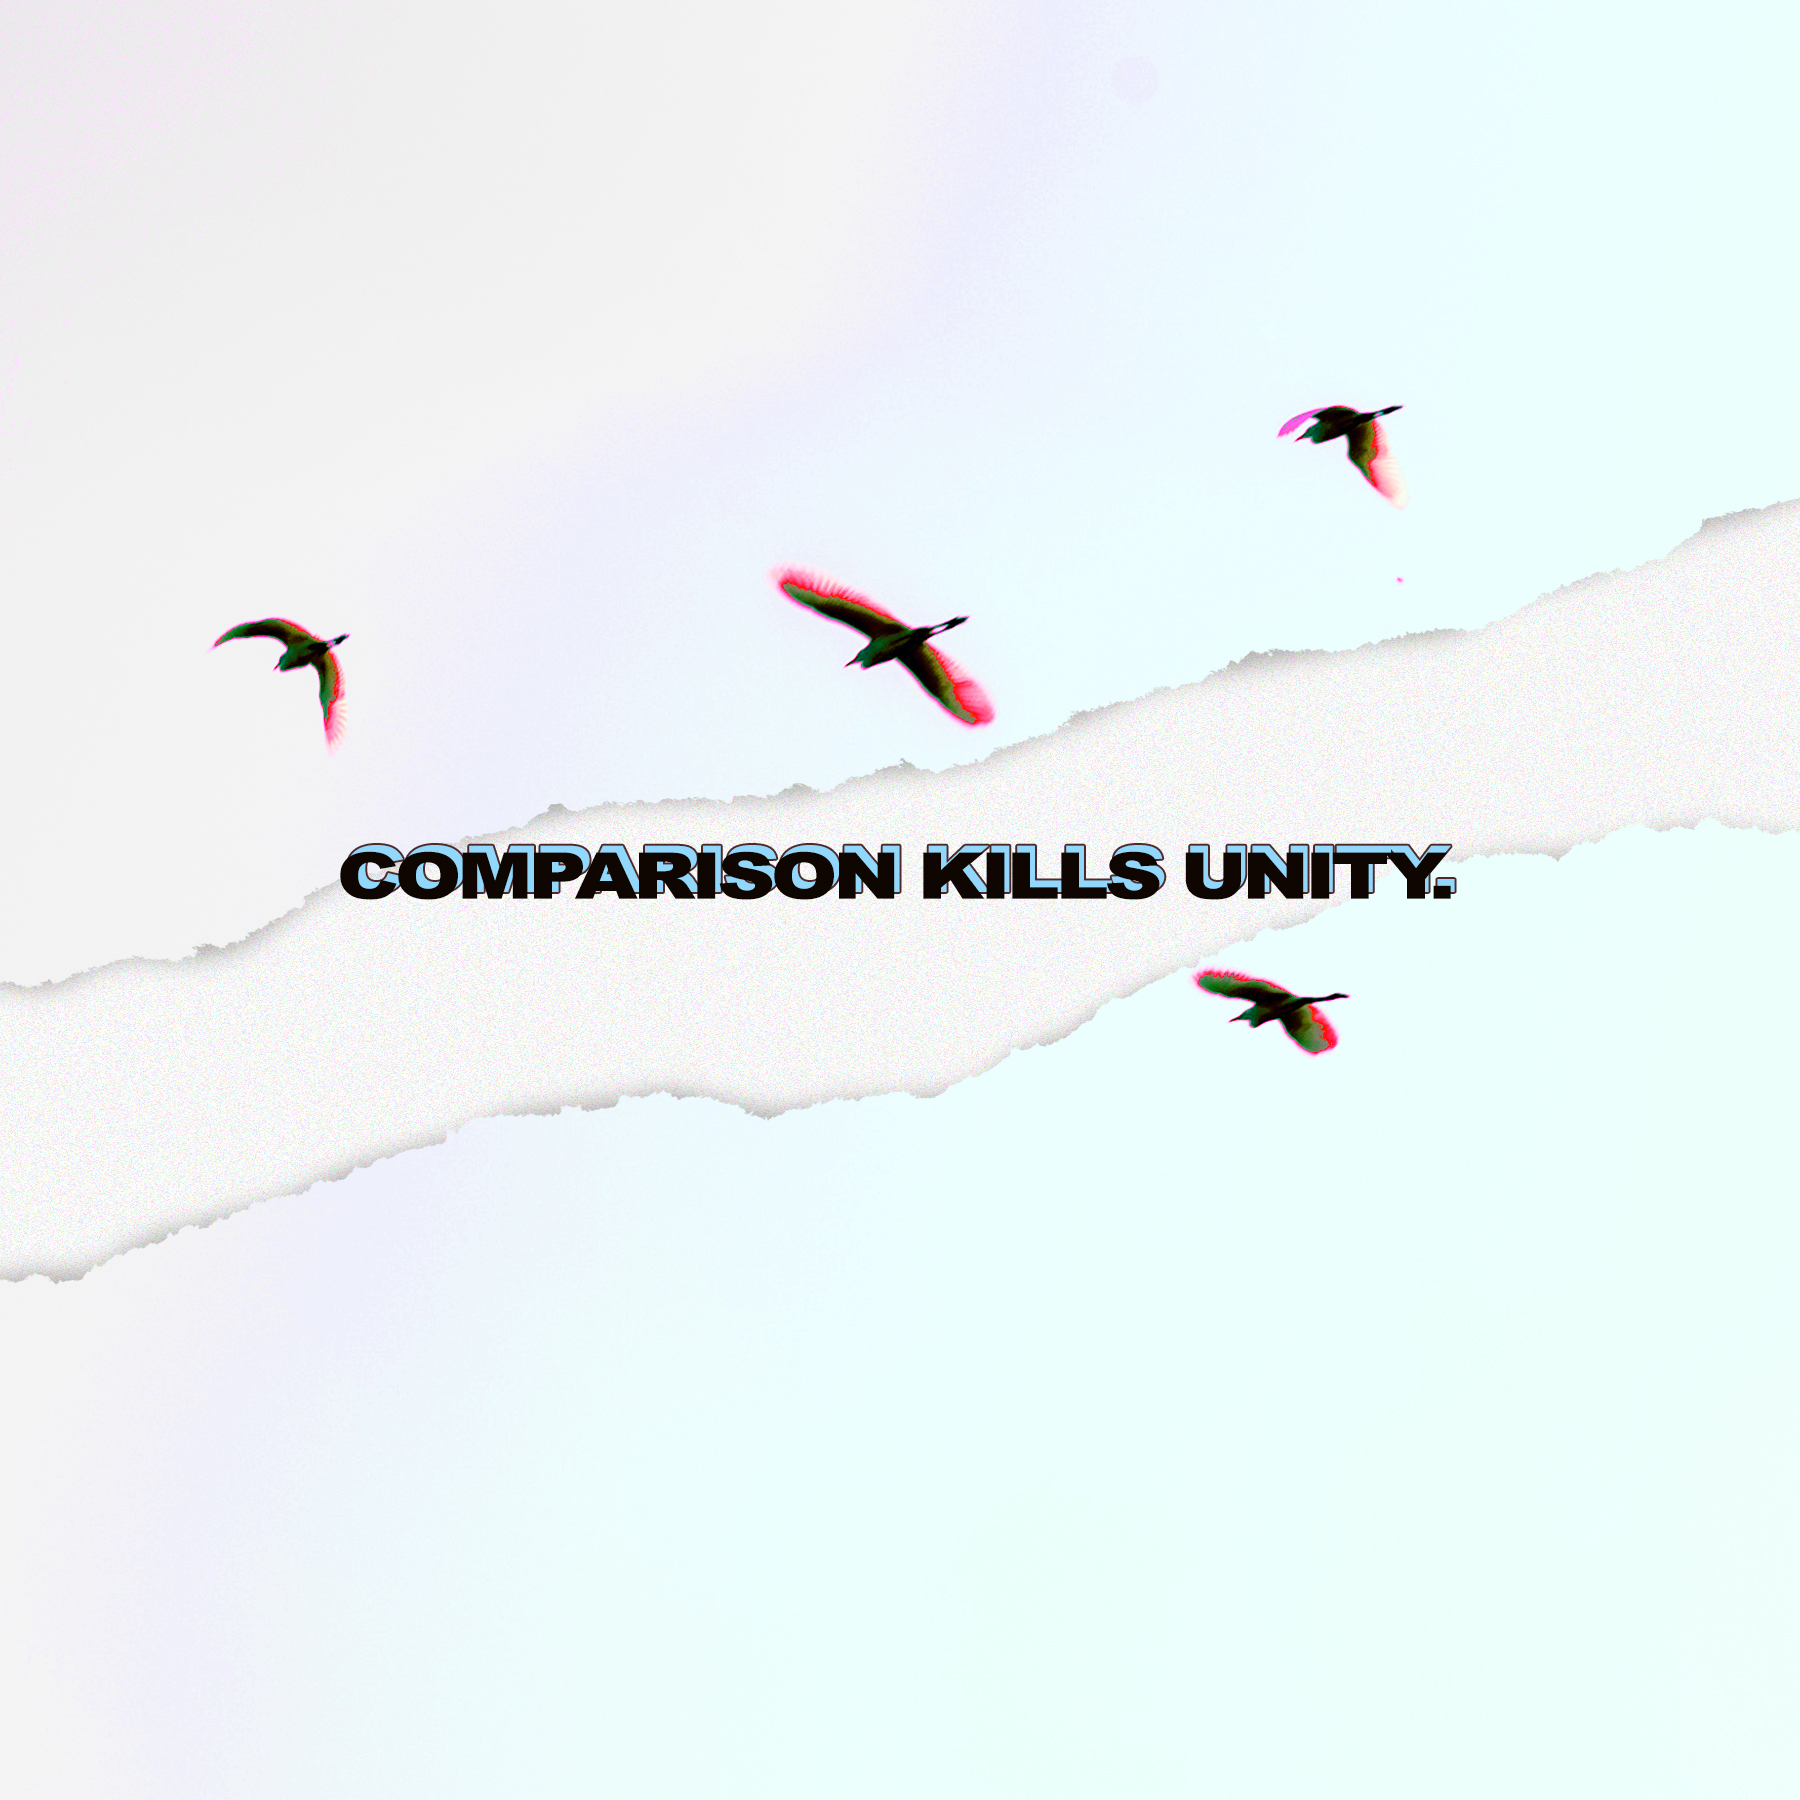 comparisonkills.jpg